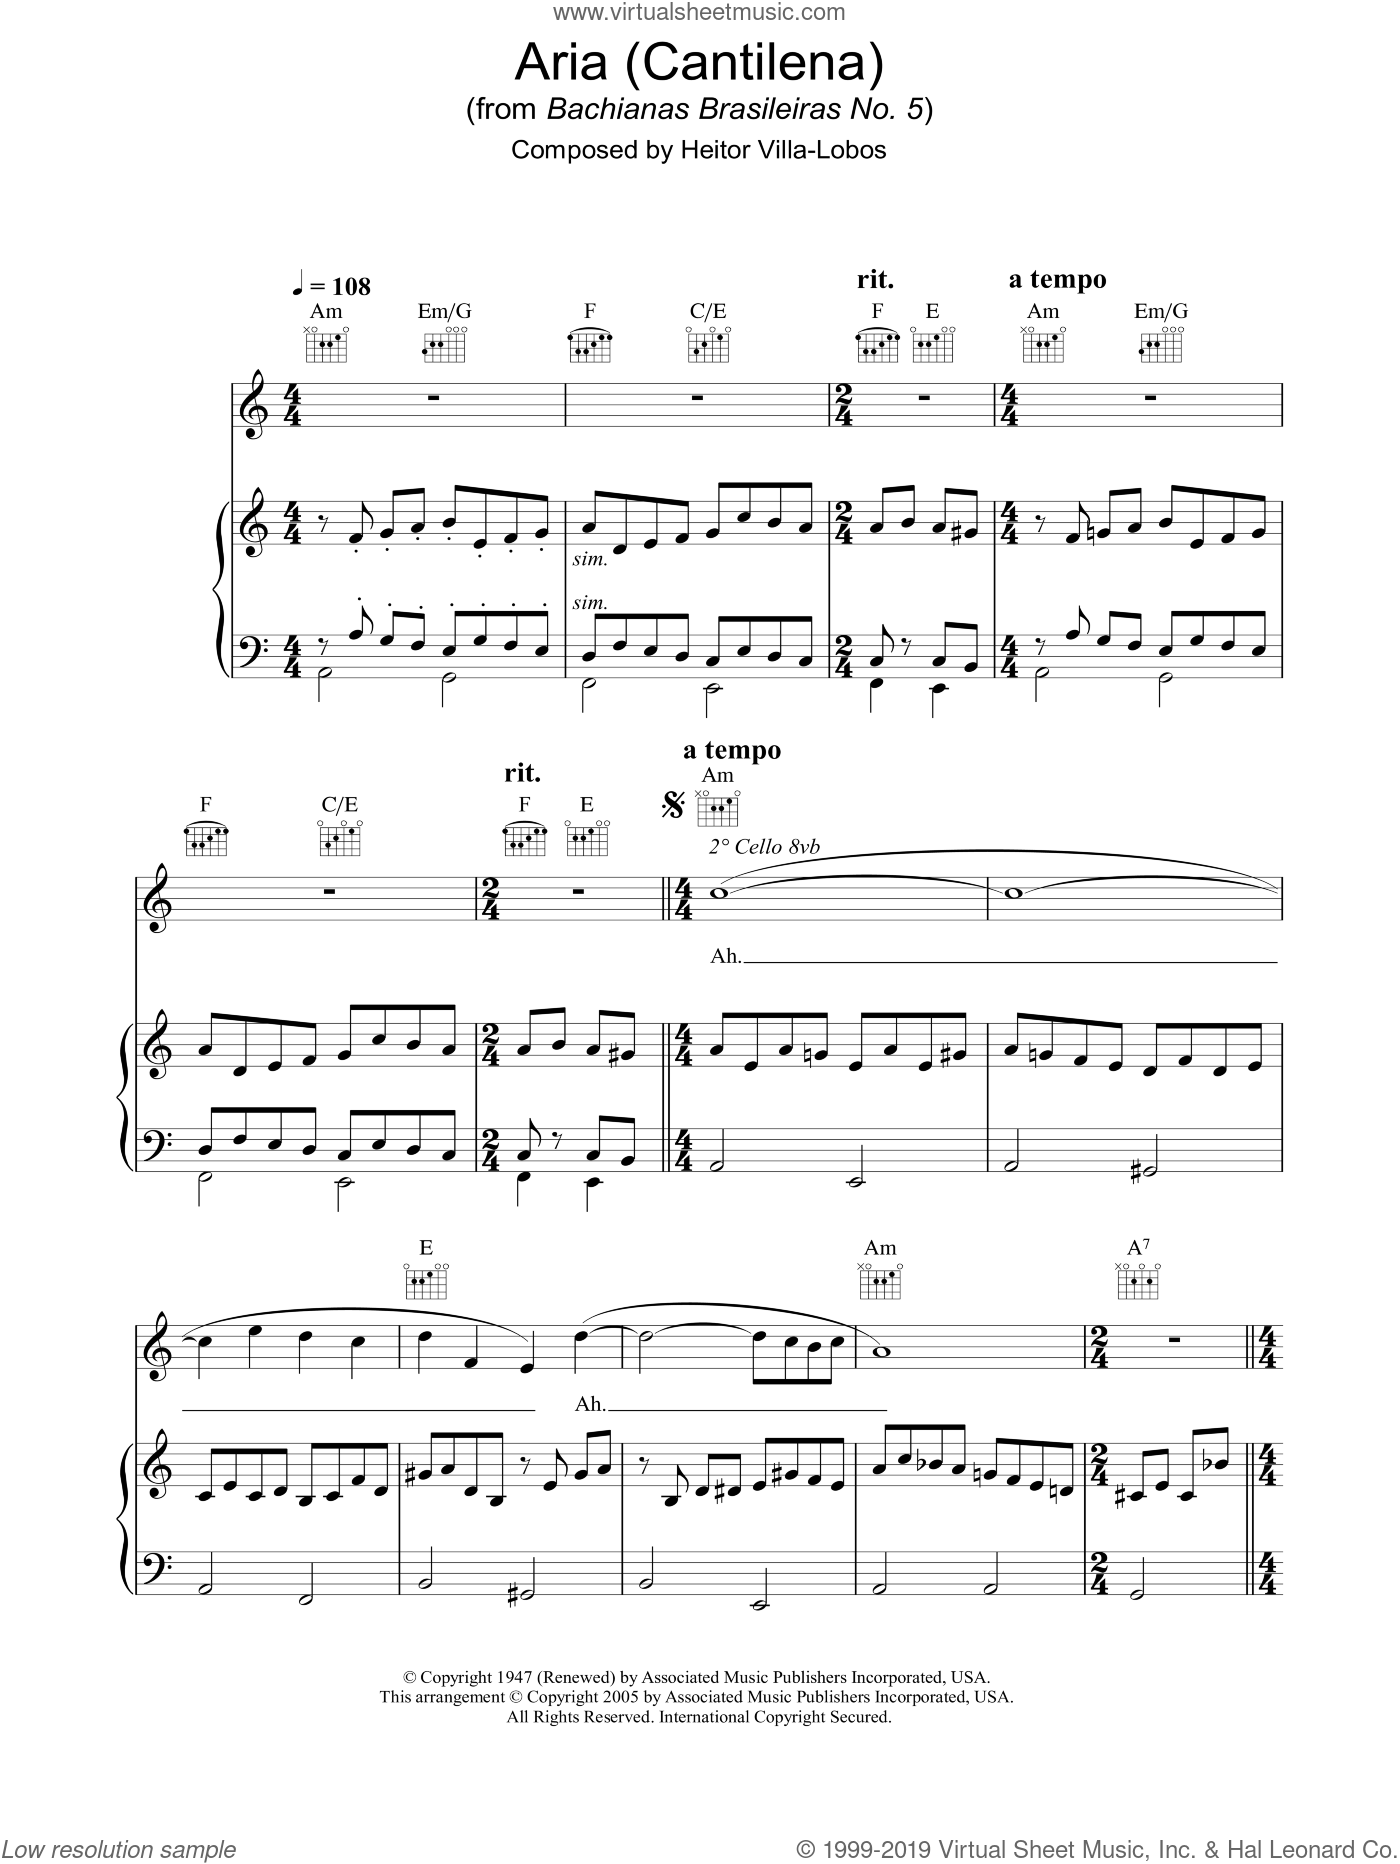 Aria (Cantilena) from Bachianas Brasileiras No. 5 sheet music for voice, piano or guitar by Hayley Westenra and Heitor Villa-Lobos, classical score, intermediate. Score Image Preview.